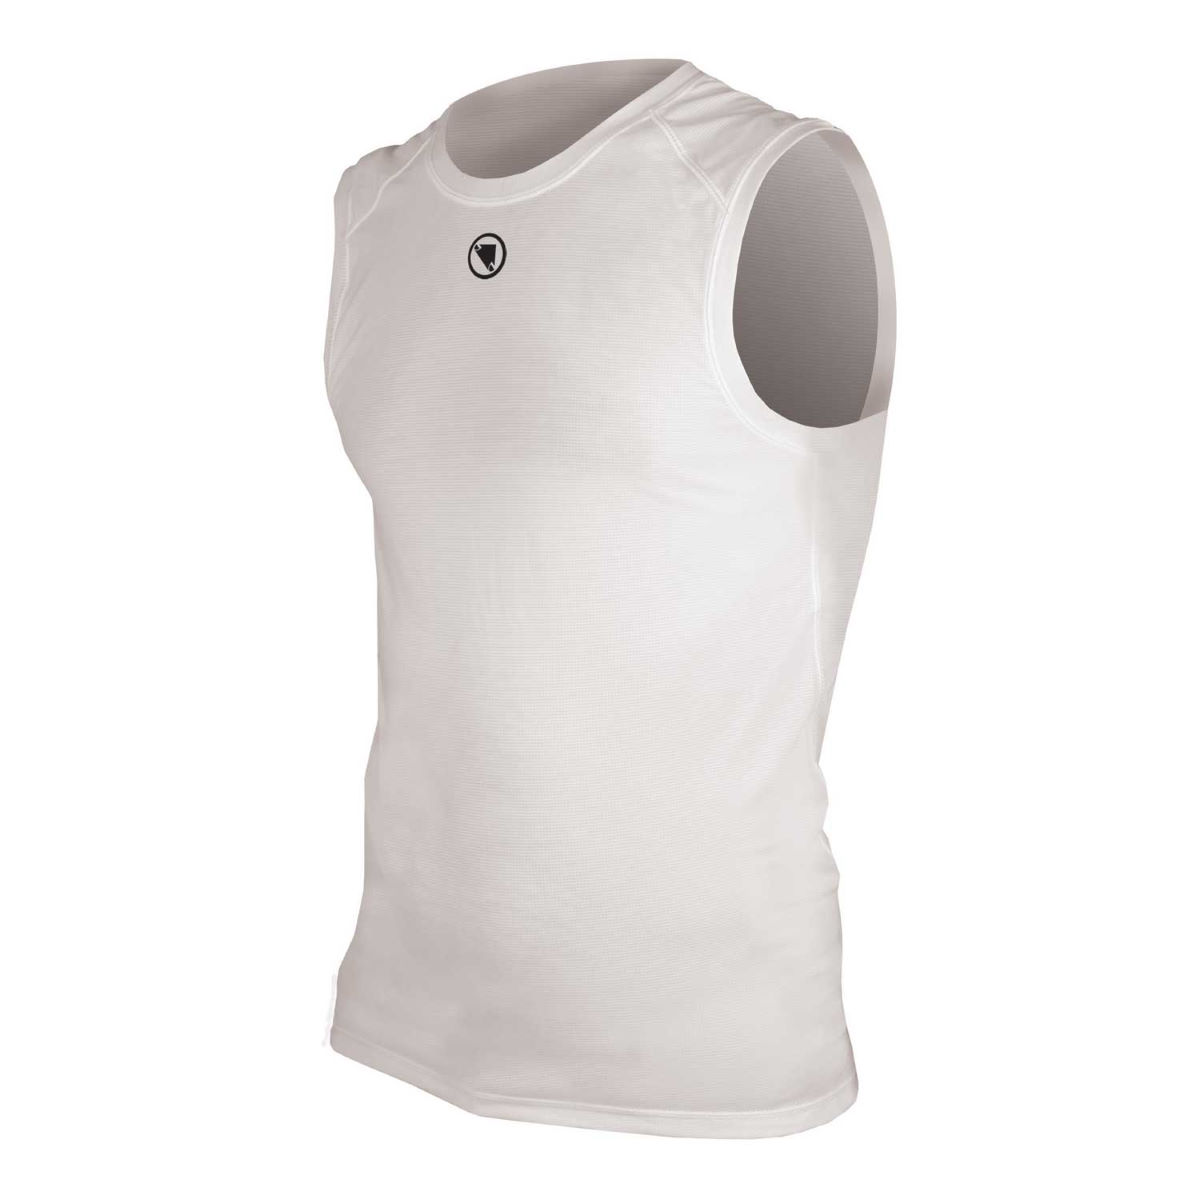 Endura Translite Sleeveless Base Layer   Base Layers